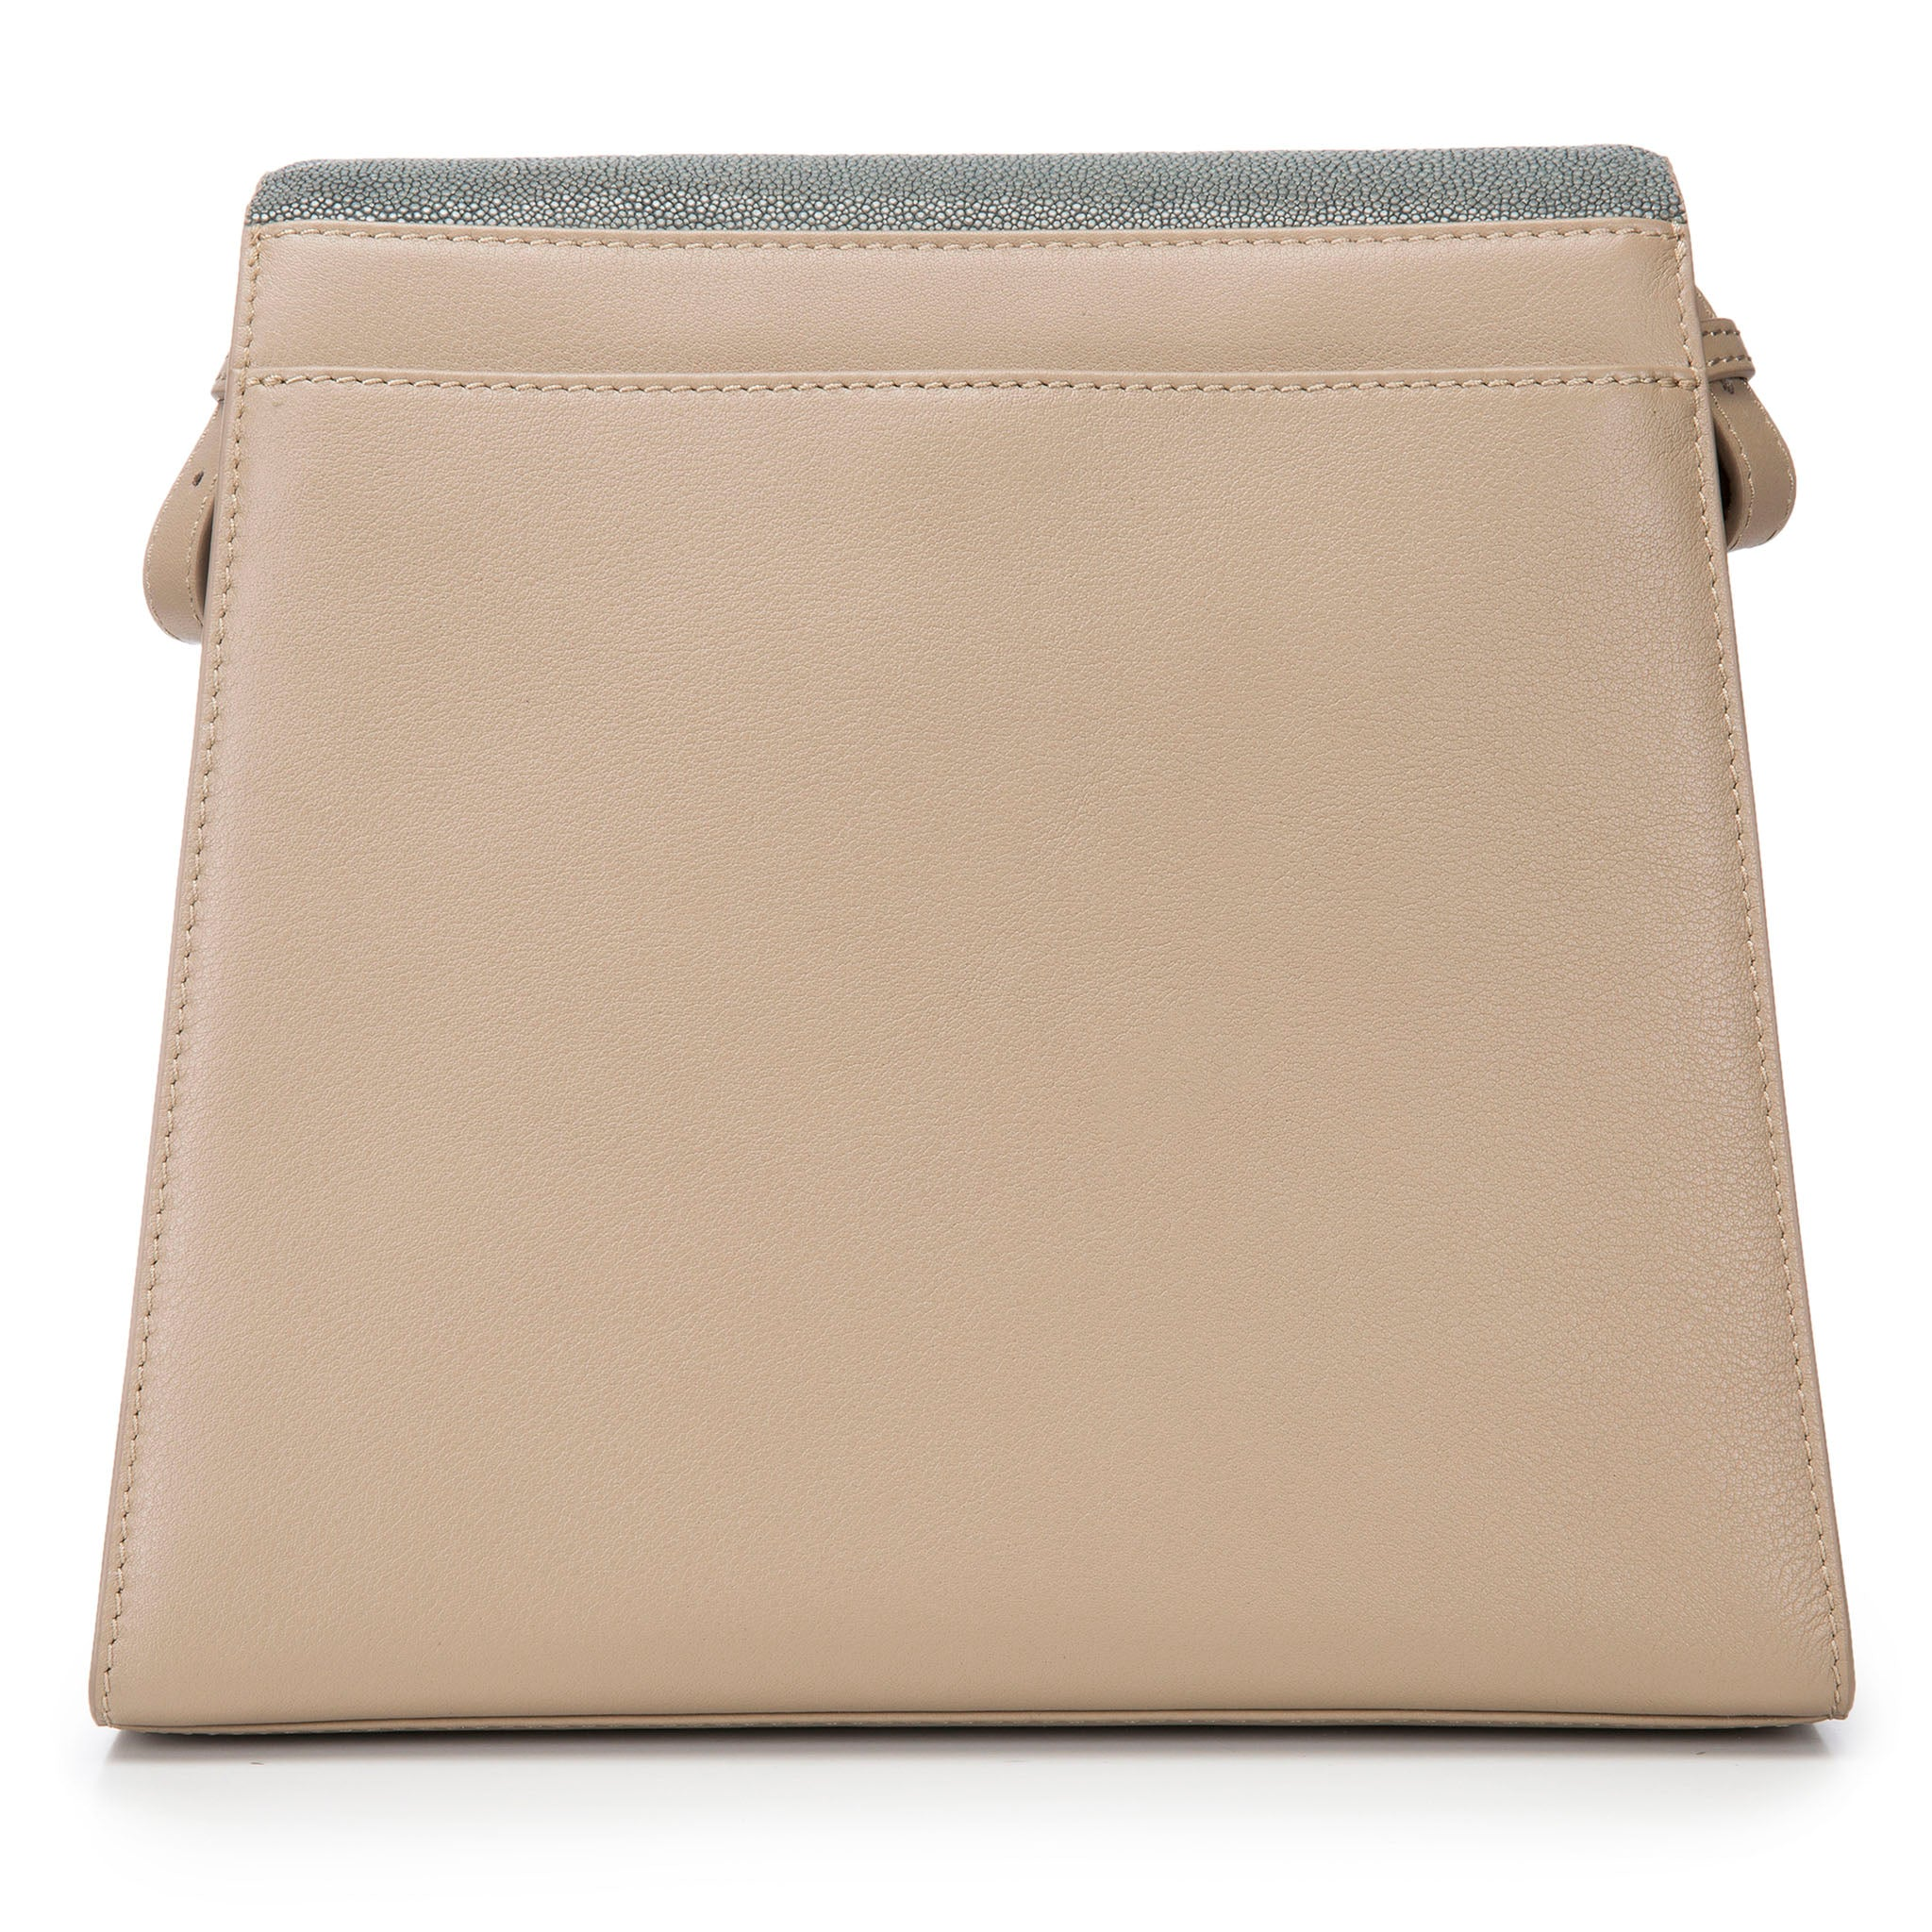 Modern Classic Crossbody Bag Gray Shagreen Top And Buff Leather Body Back View Jacq - Vivo Direct